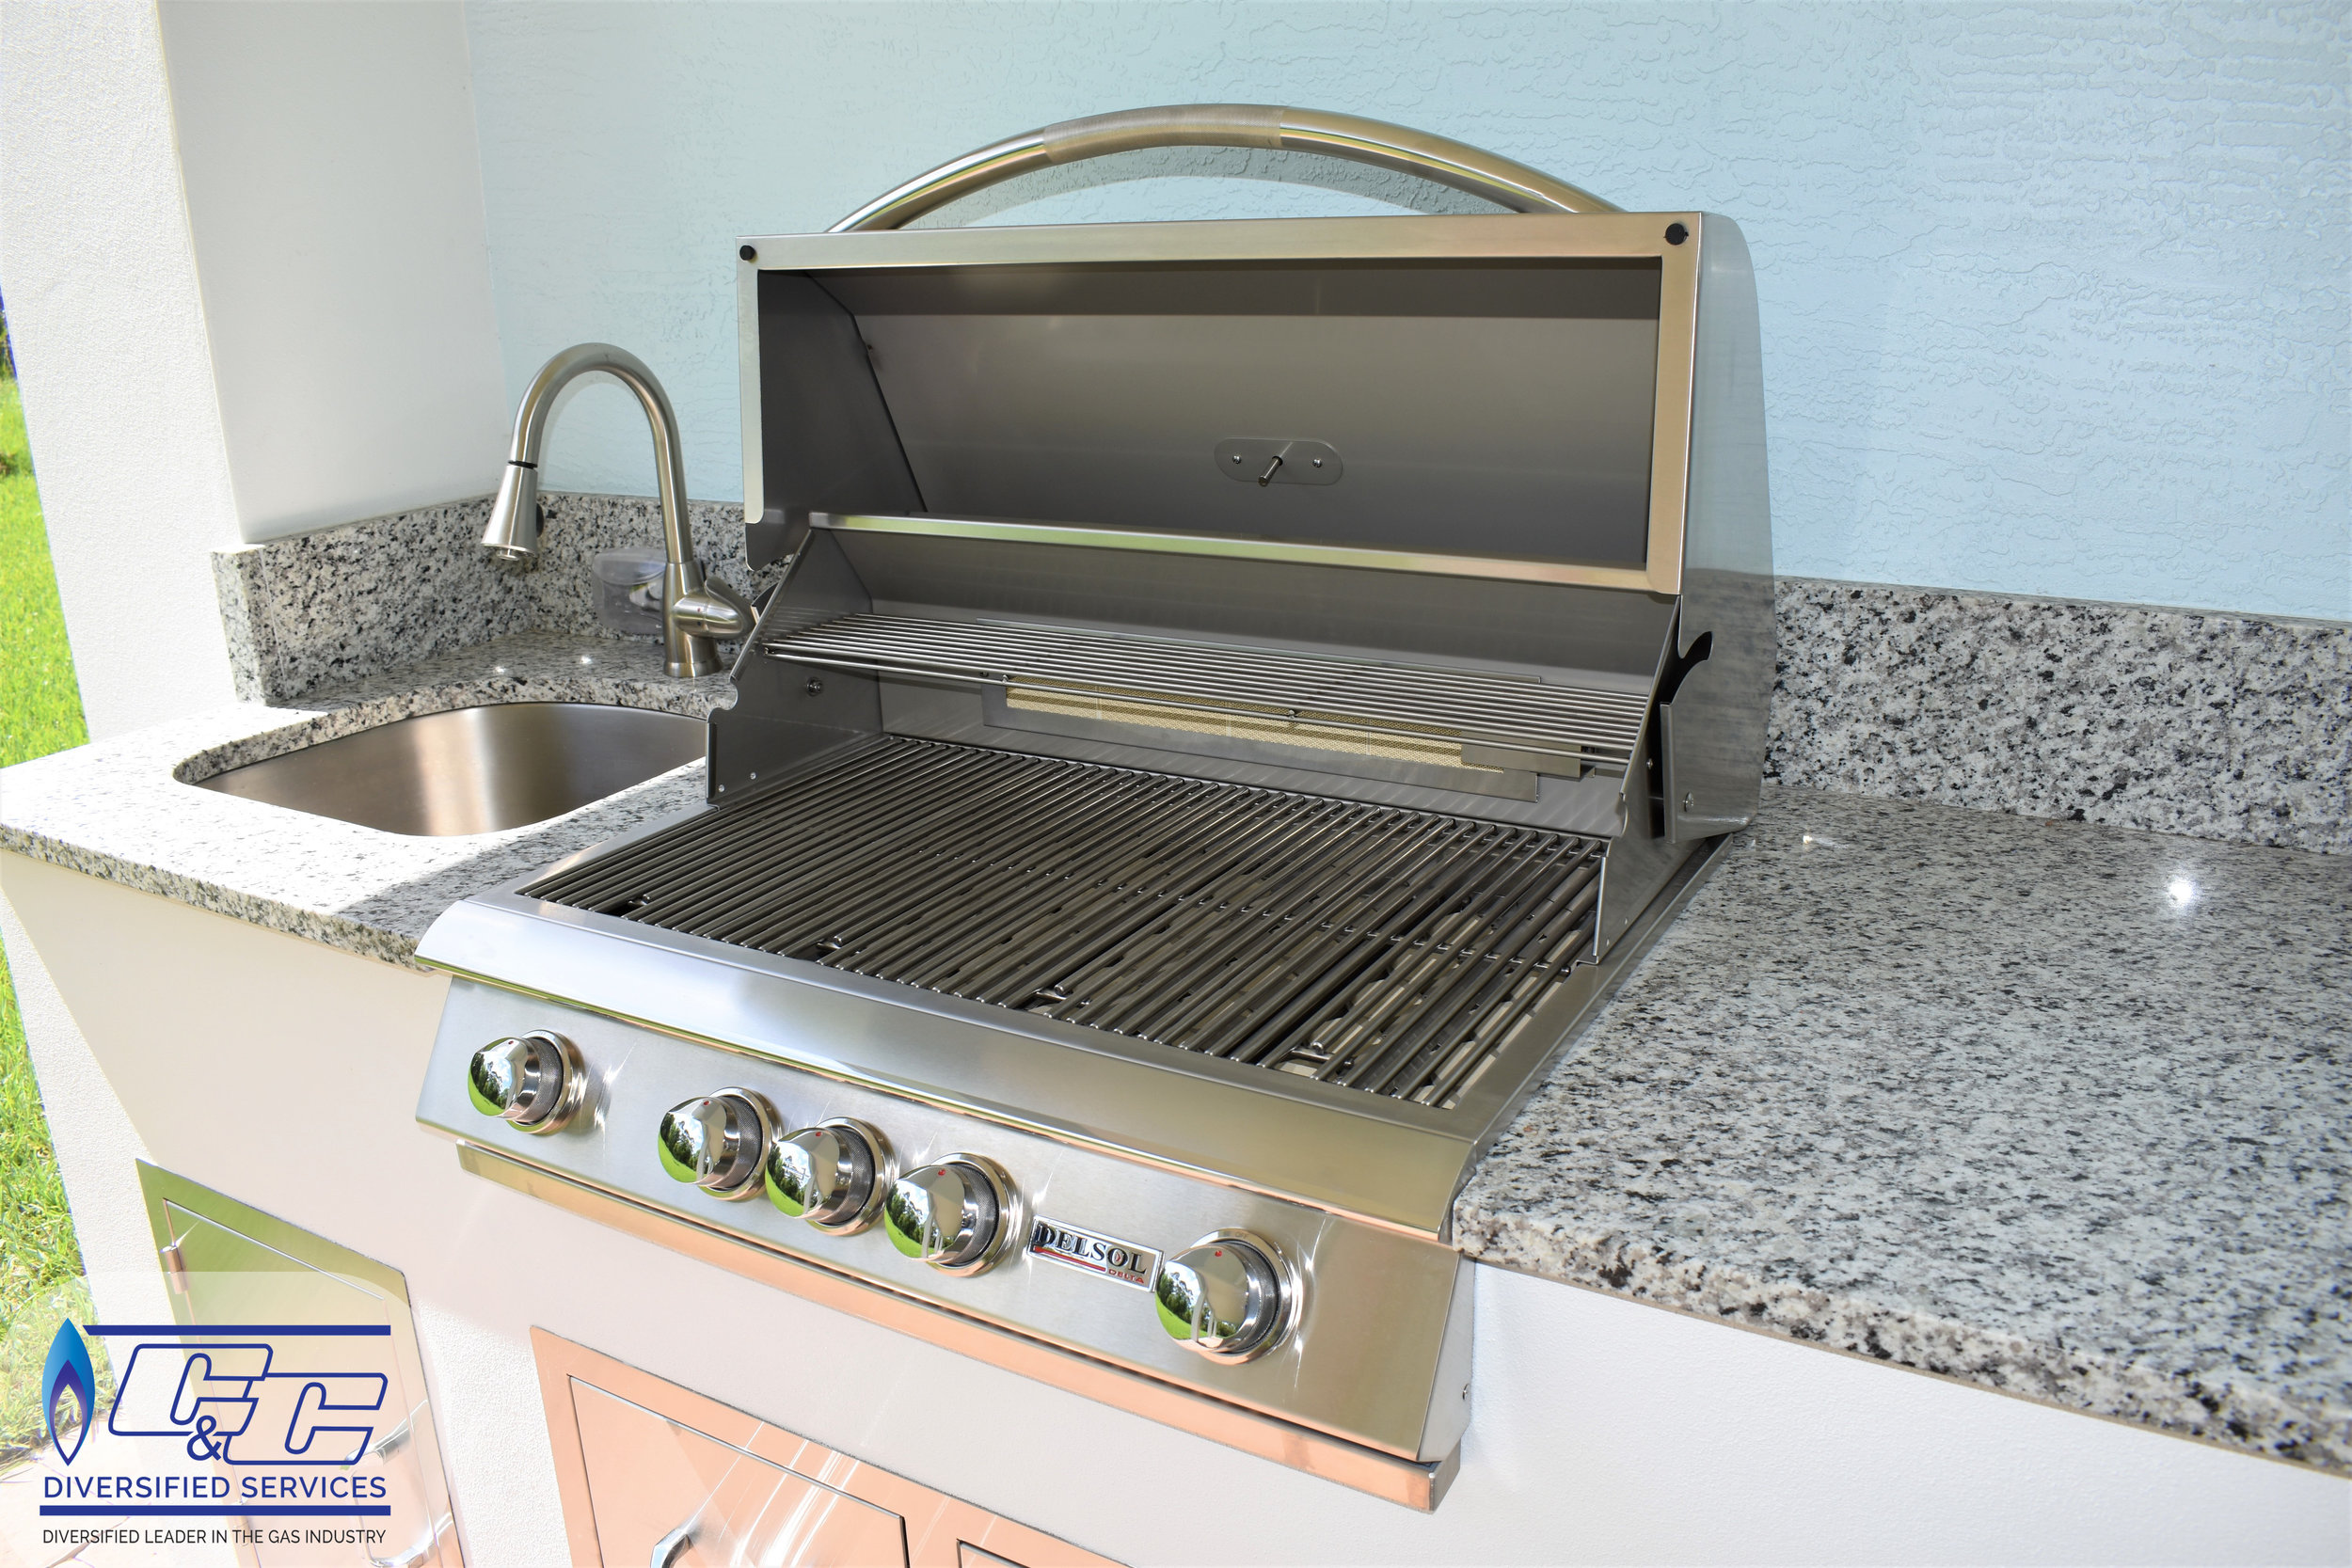 Stainless Steel Sink, and Granite Countertop